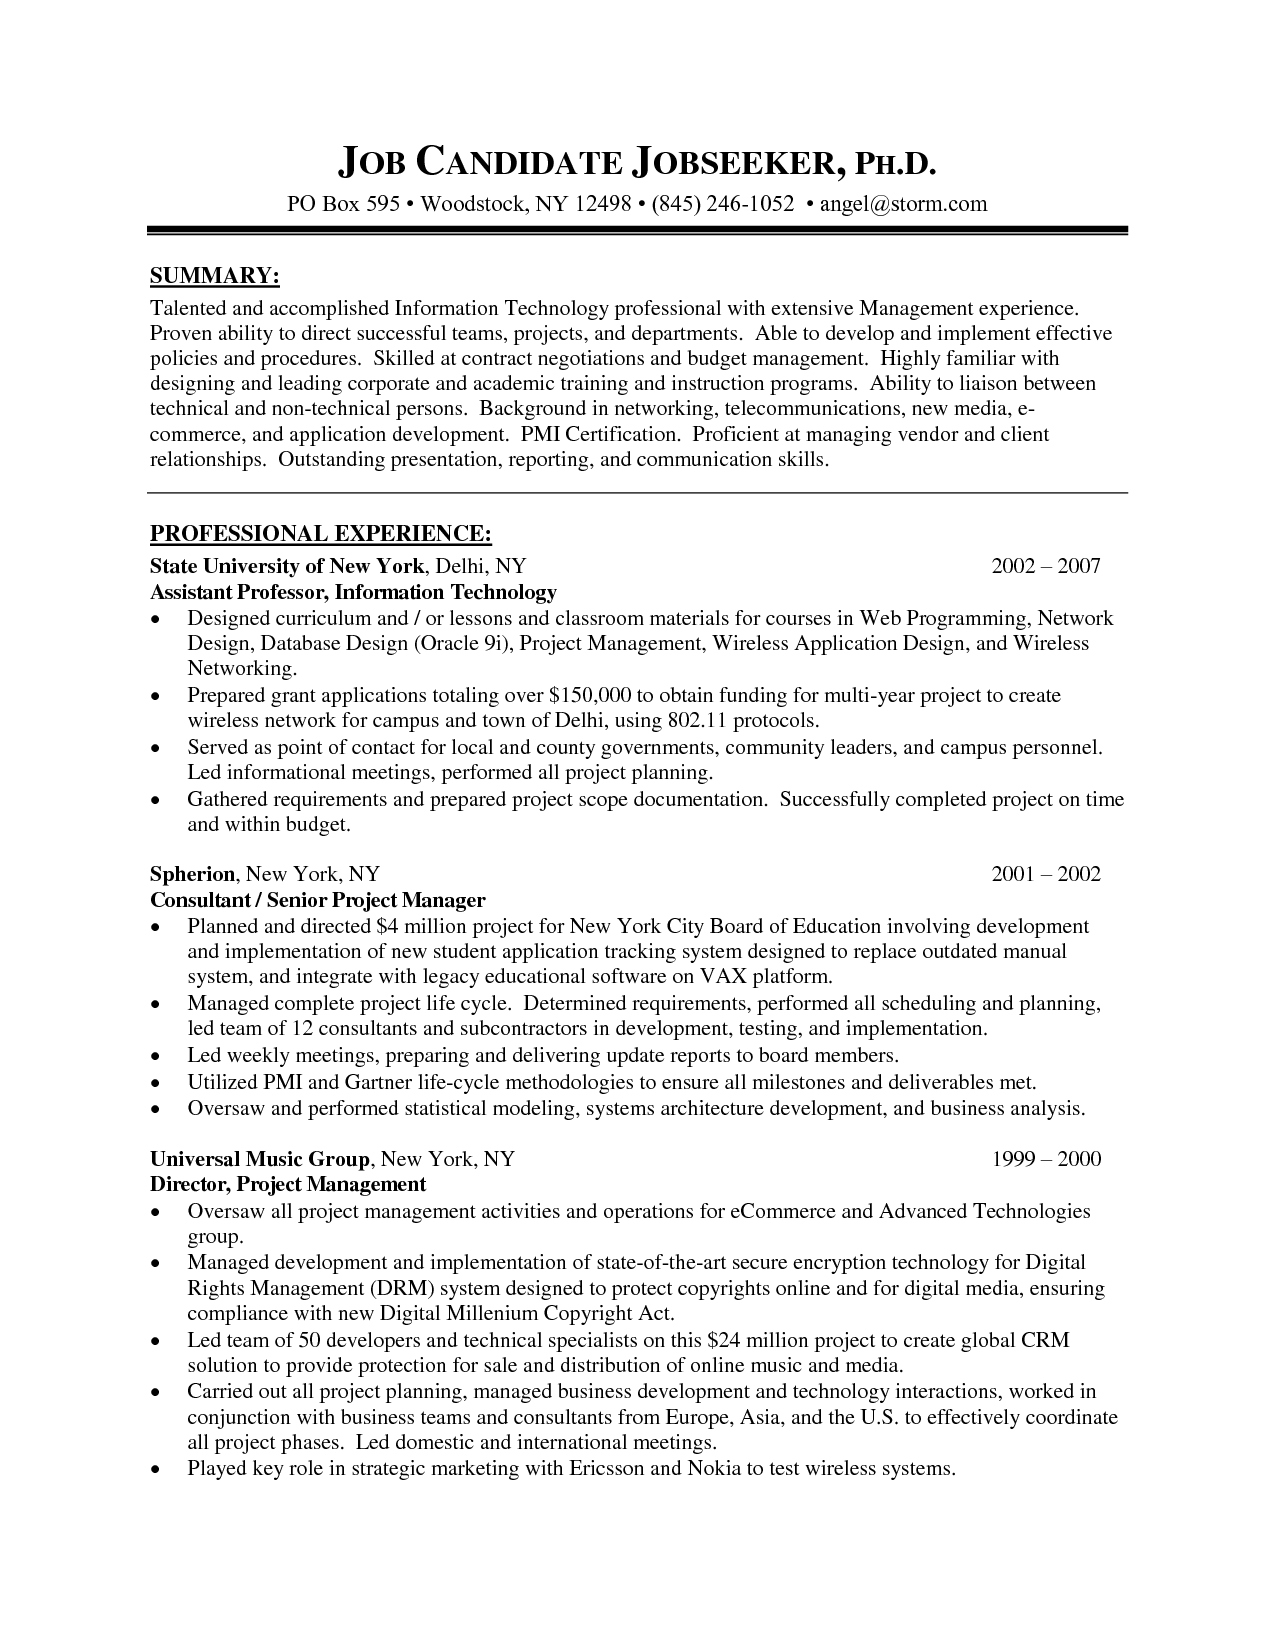 Manager resume free sample senior project with summary examples manager resume free sample senior project with summary examples compare writing services find local yelopaper Choice Image